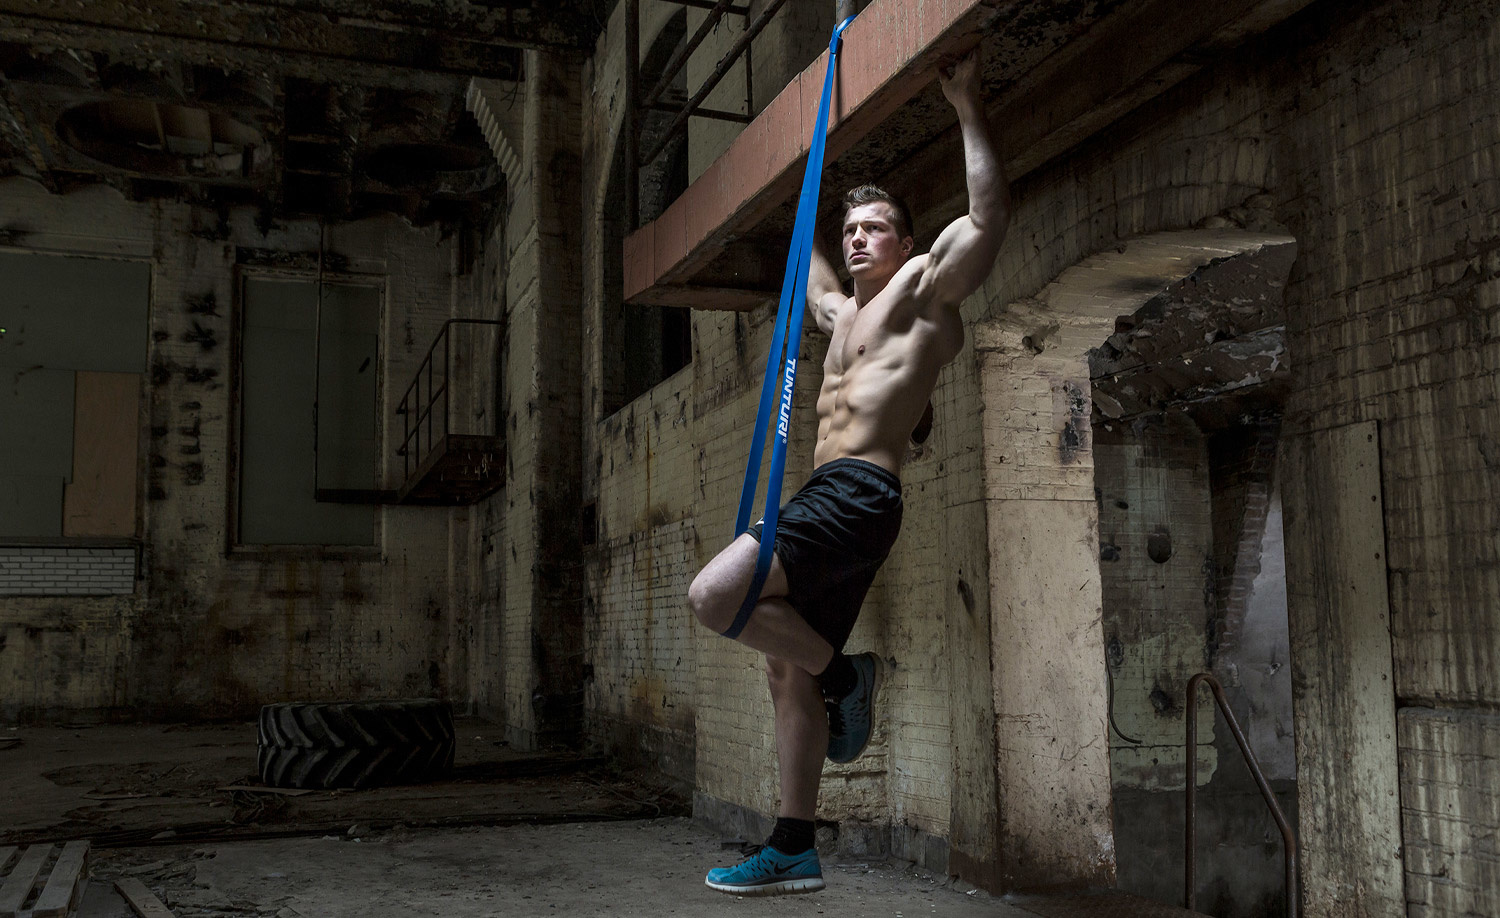 Resistance bands and power bands: the power of resistance